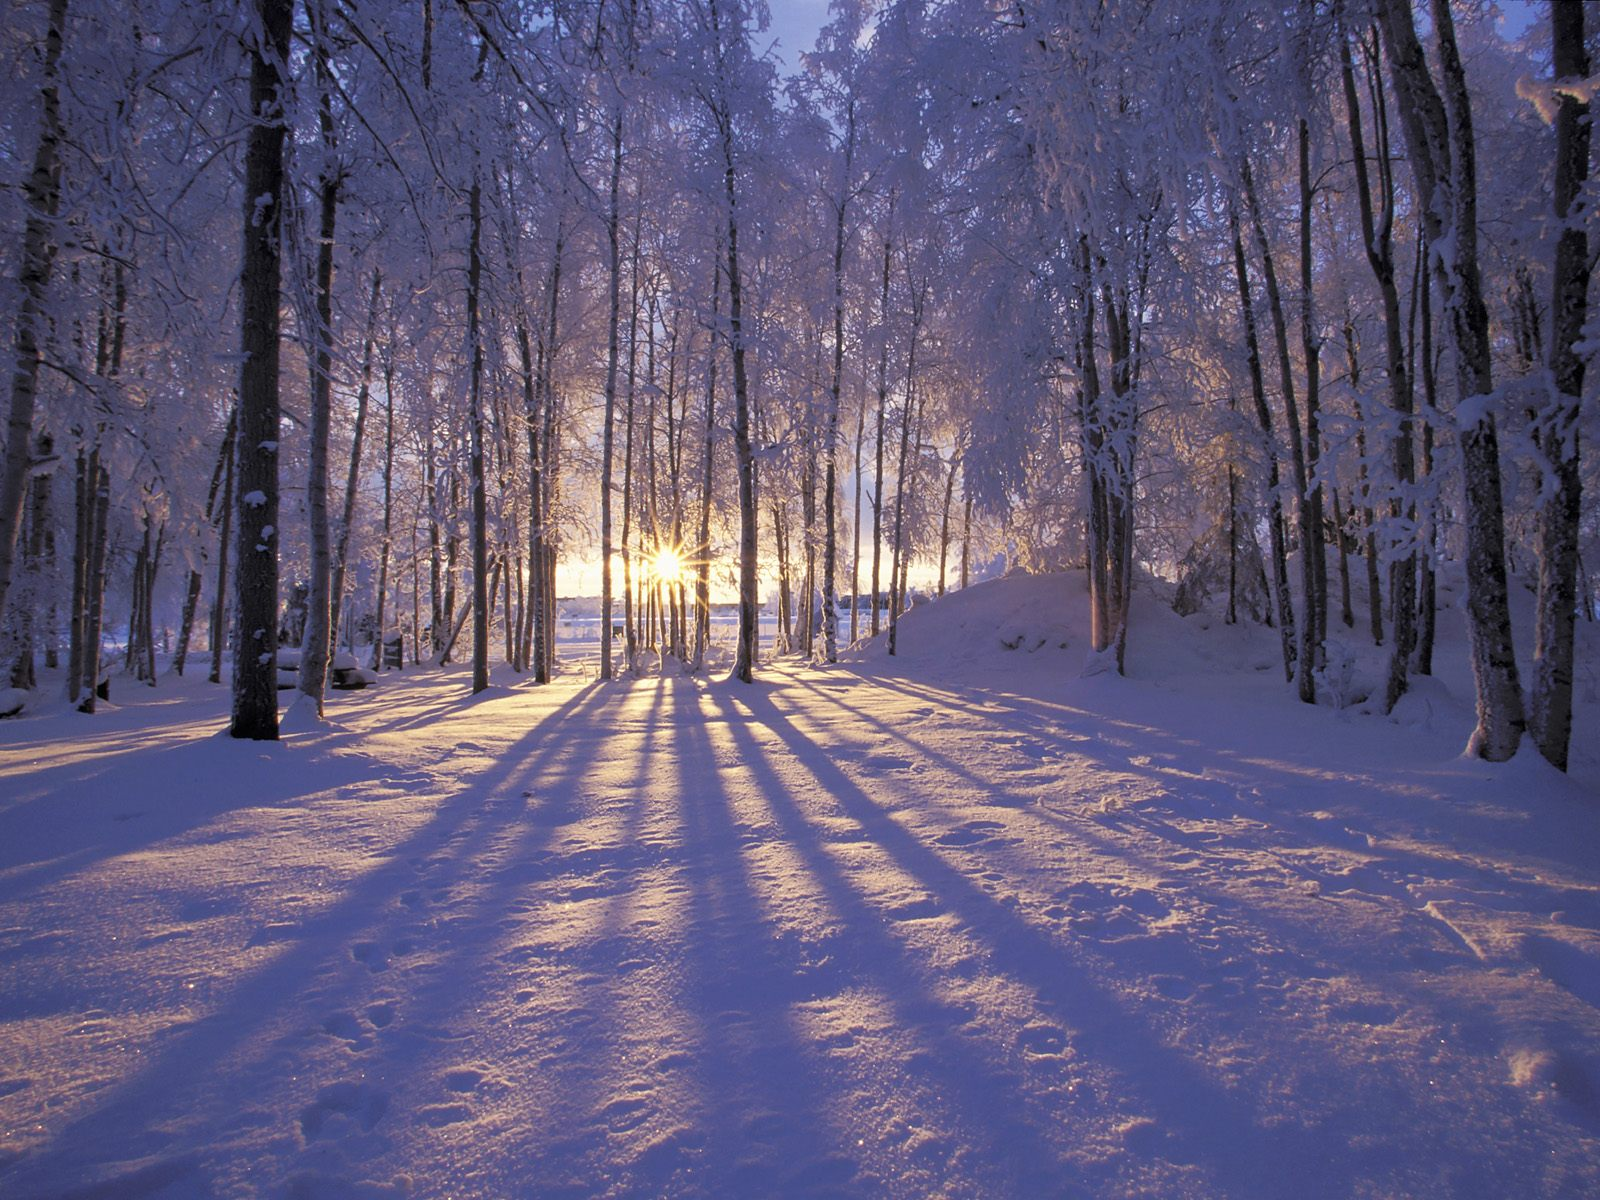 The magic of light on a winter's day- it can chase away the blues if you surround yourself with it.